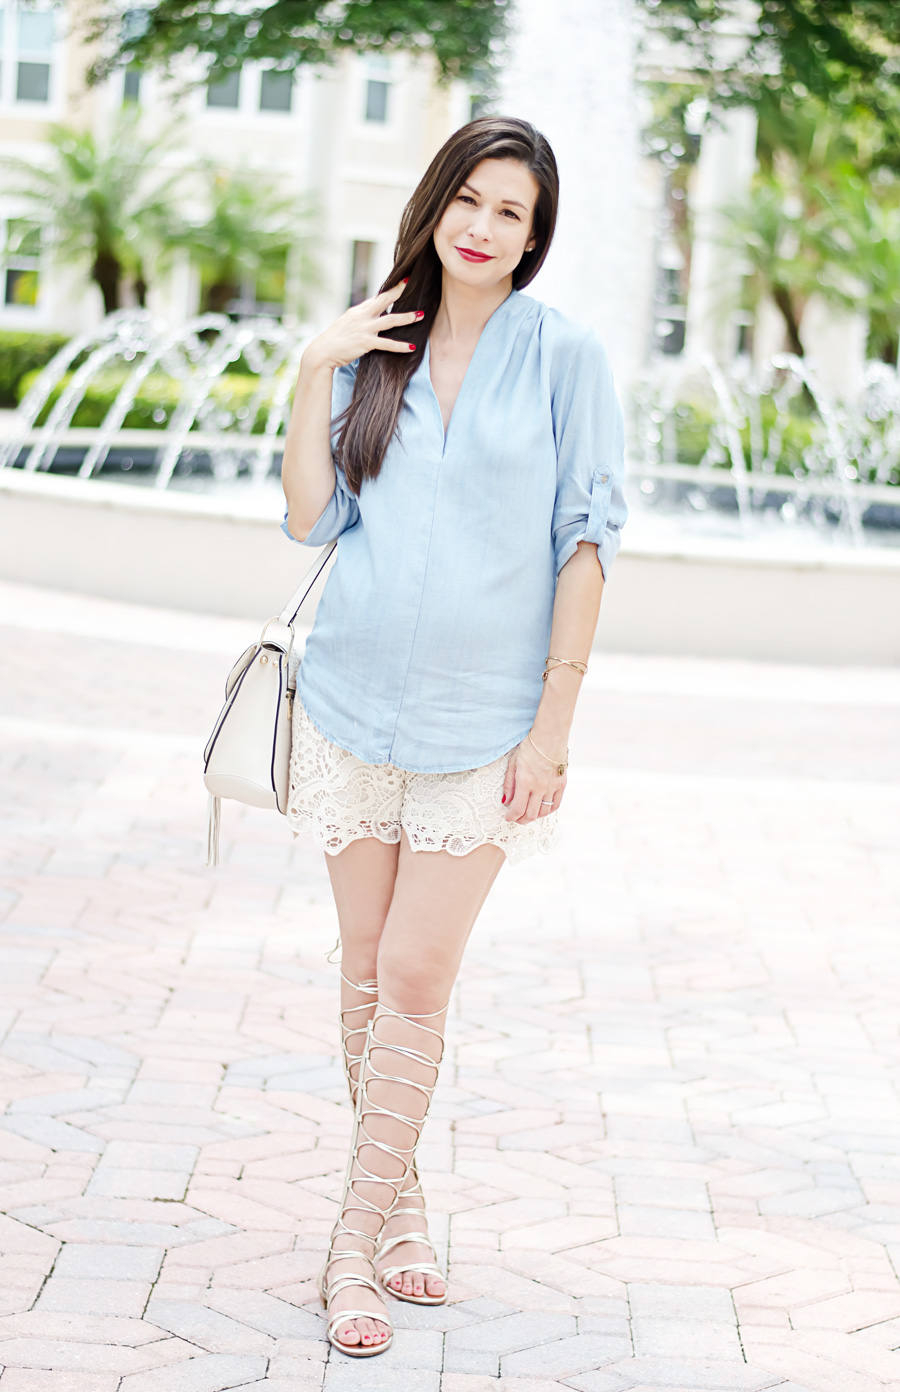 Chambray and Lace, Mossimo Chambray Denim Top, Olian Lace Shorts, Stuart Weitzman Gold Gladiator Sandals, Chloe Hudson Handbag